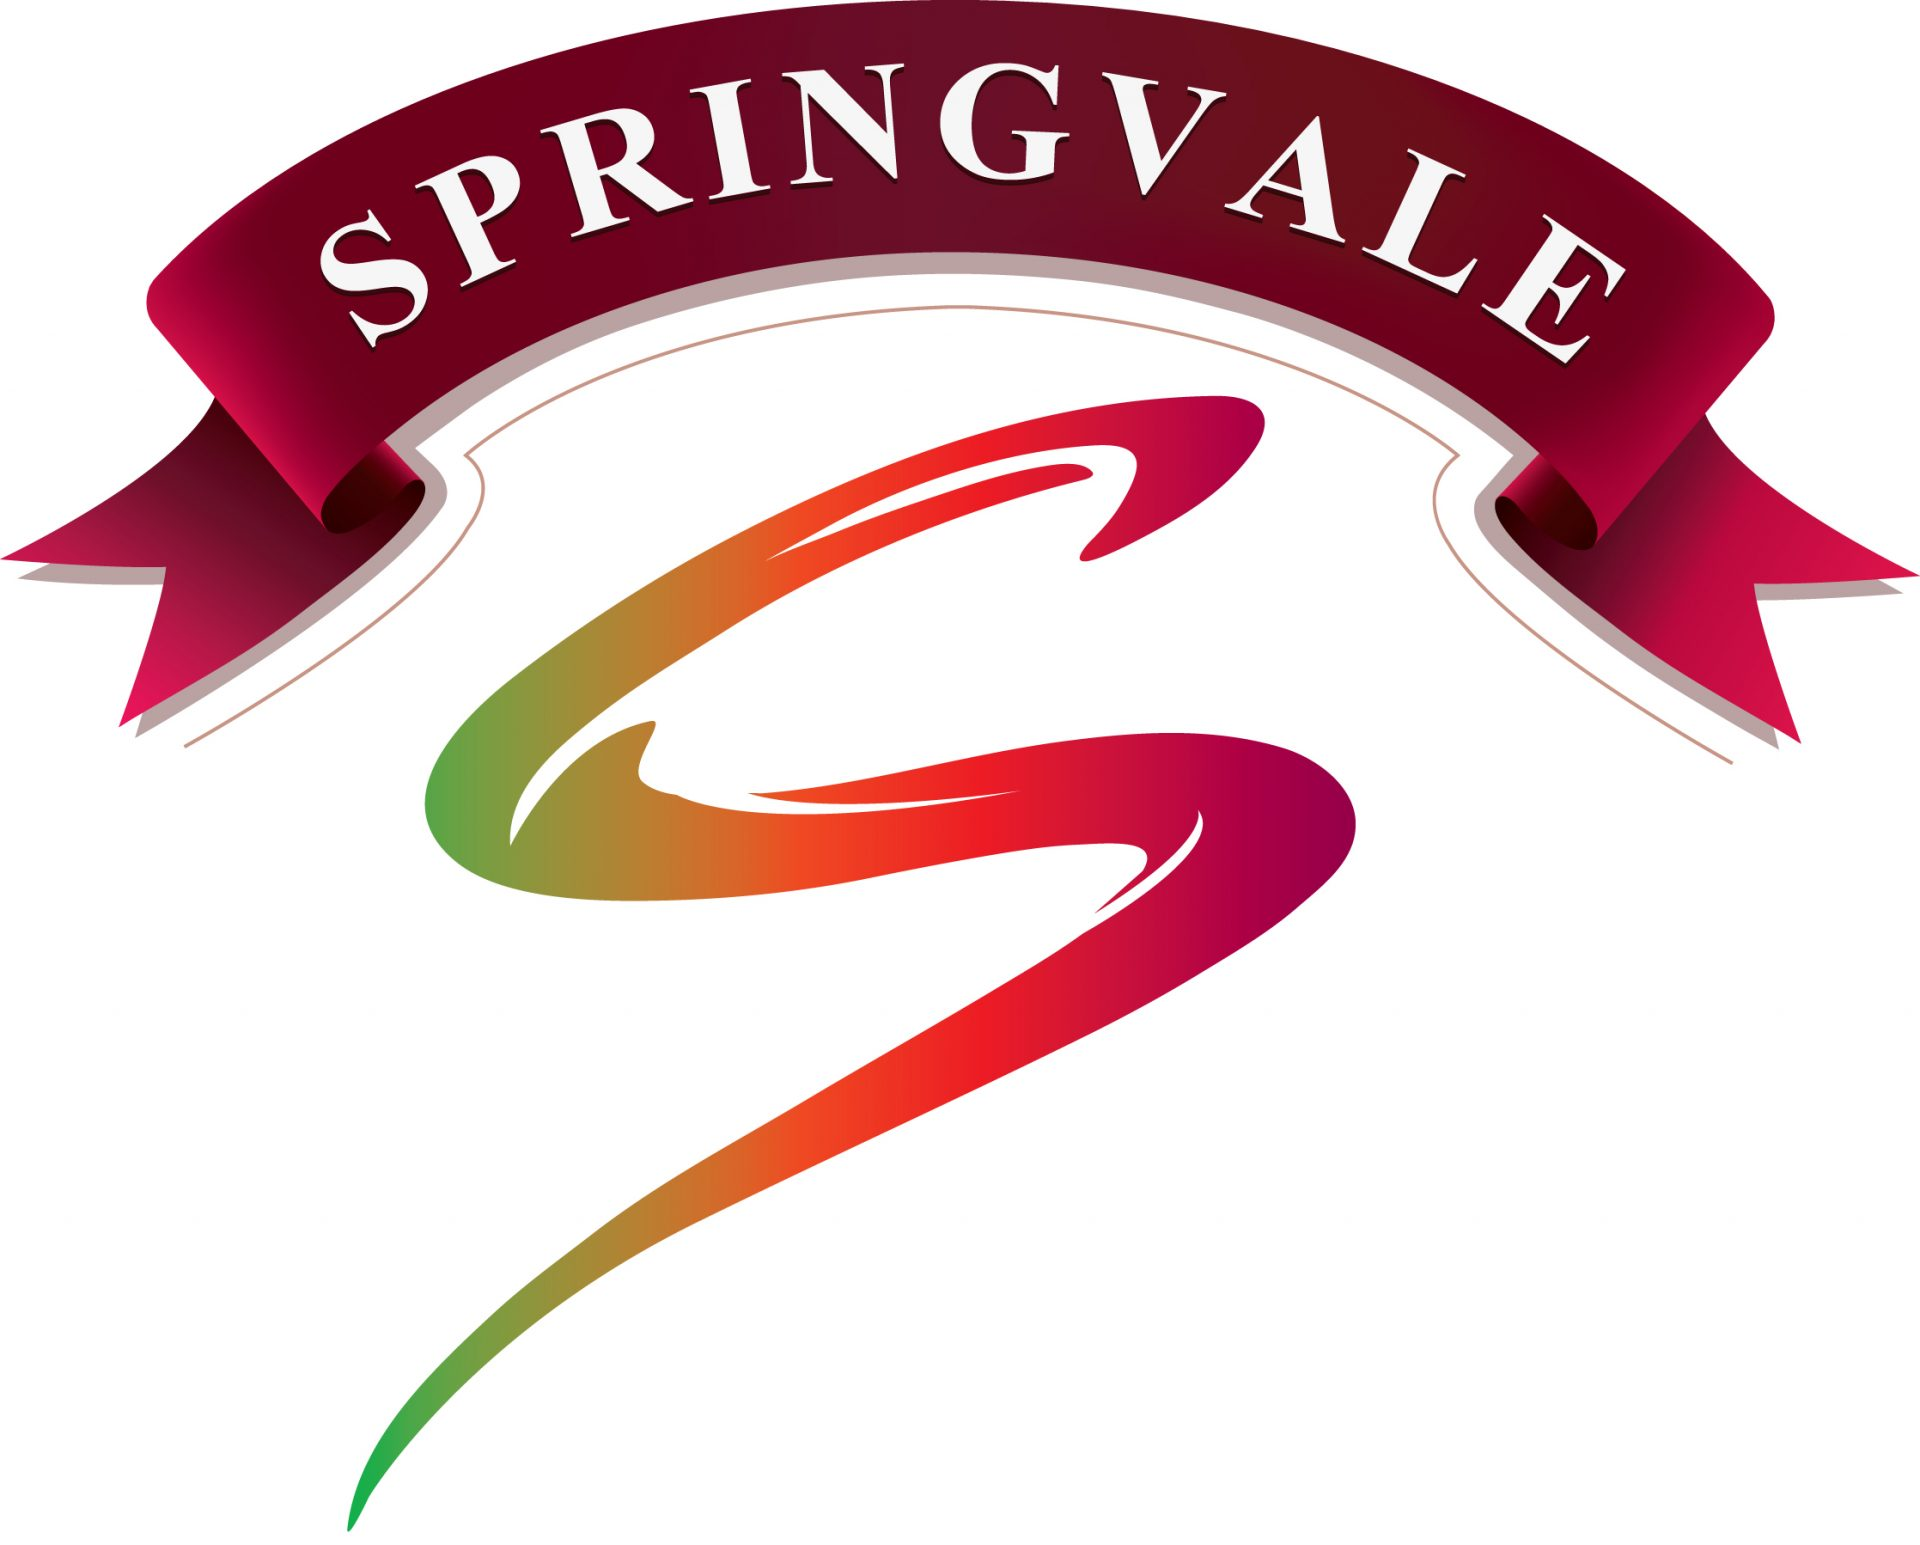 Springvale Products